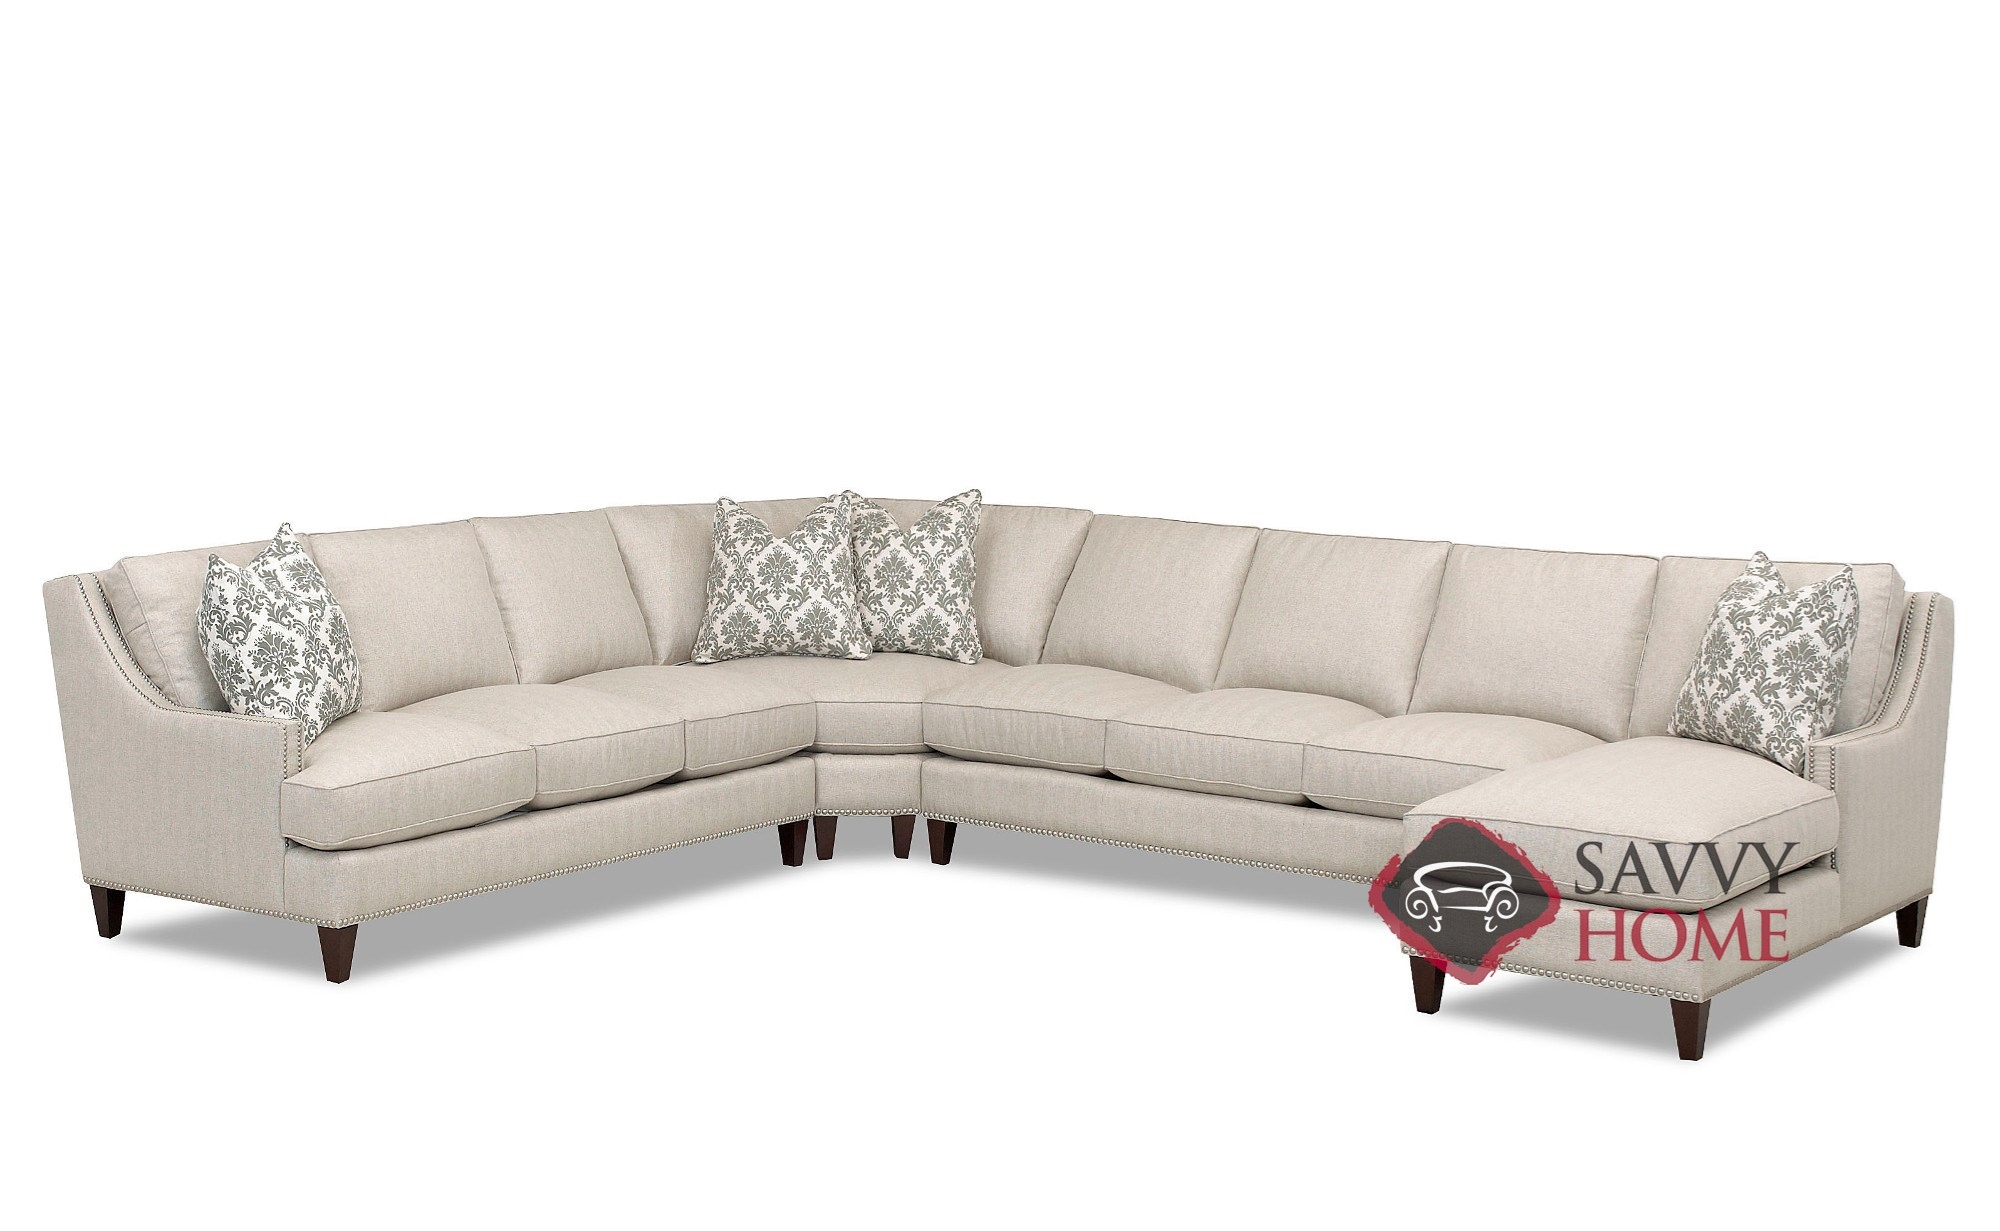 Ordinaire Dallas Large U Shape True Sectional By Savvy